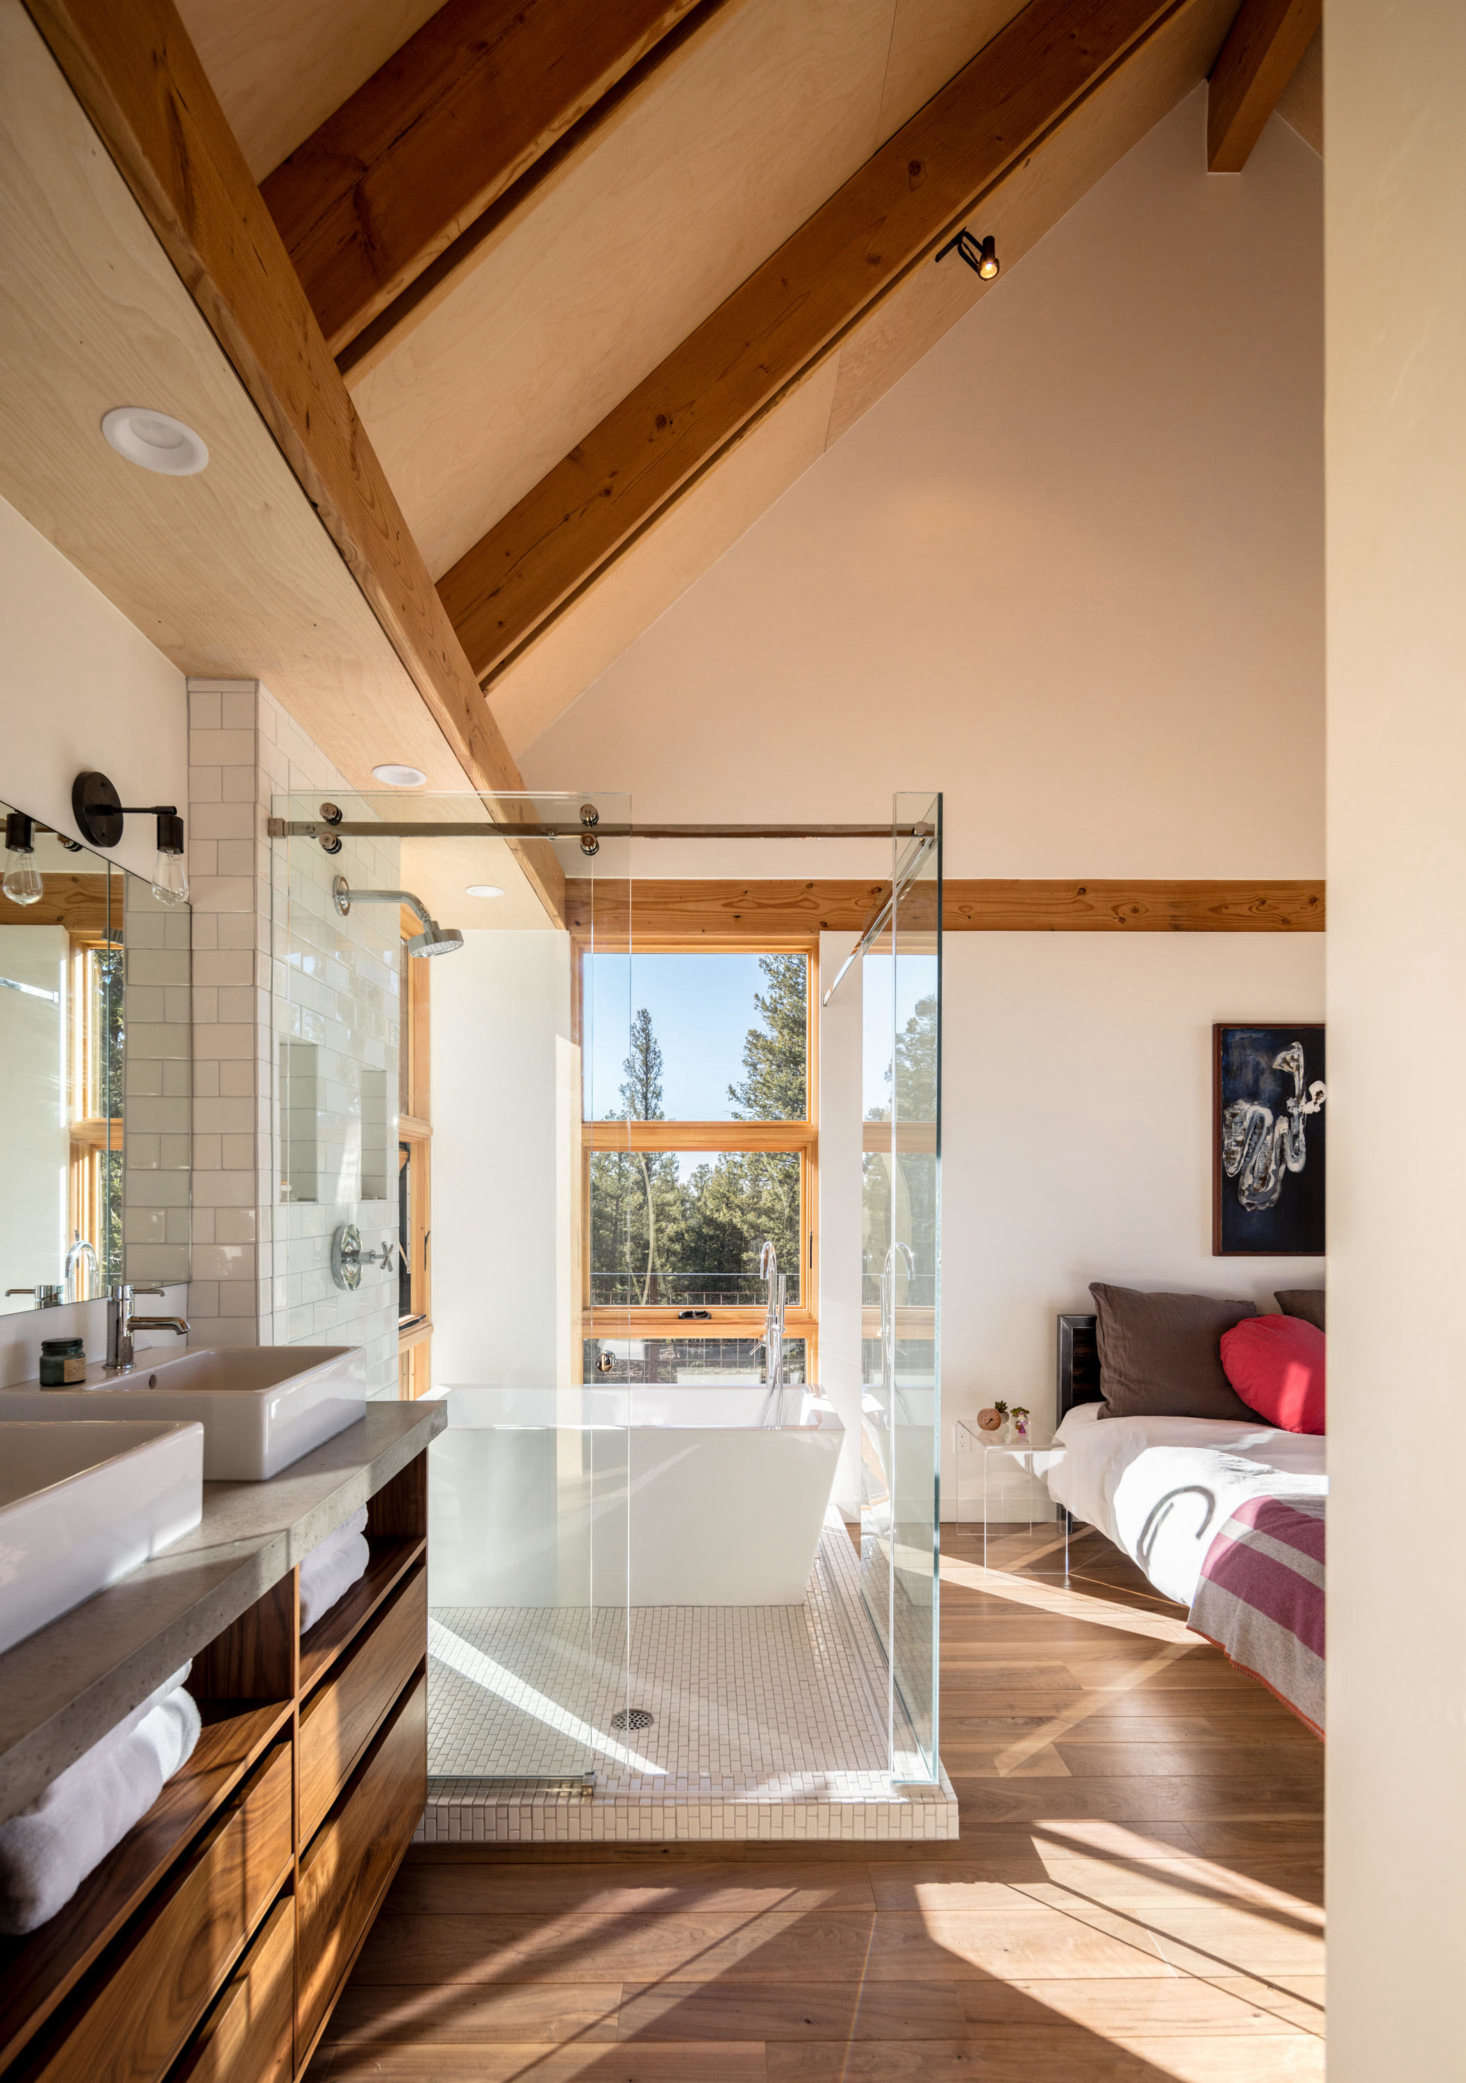 Blum requested an outdoor shower, something that doesn't make sense most months of the year here, so instead del Gaudio designed a master bedroom with an en suite bath that feels as if it's outdoors.